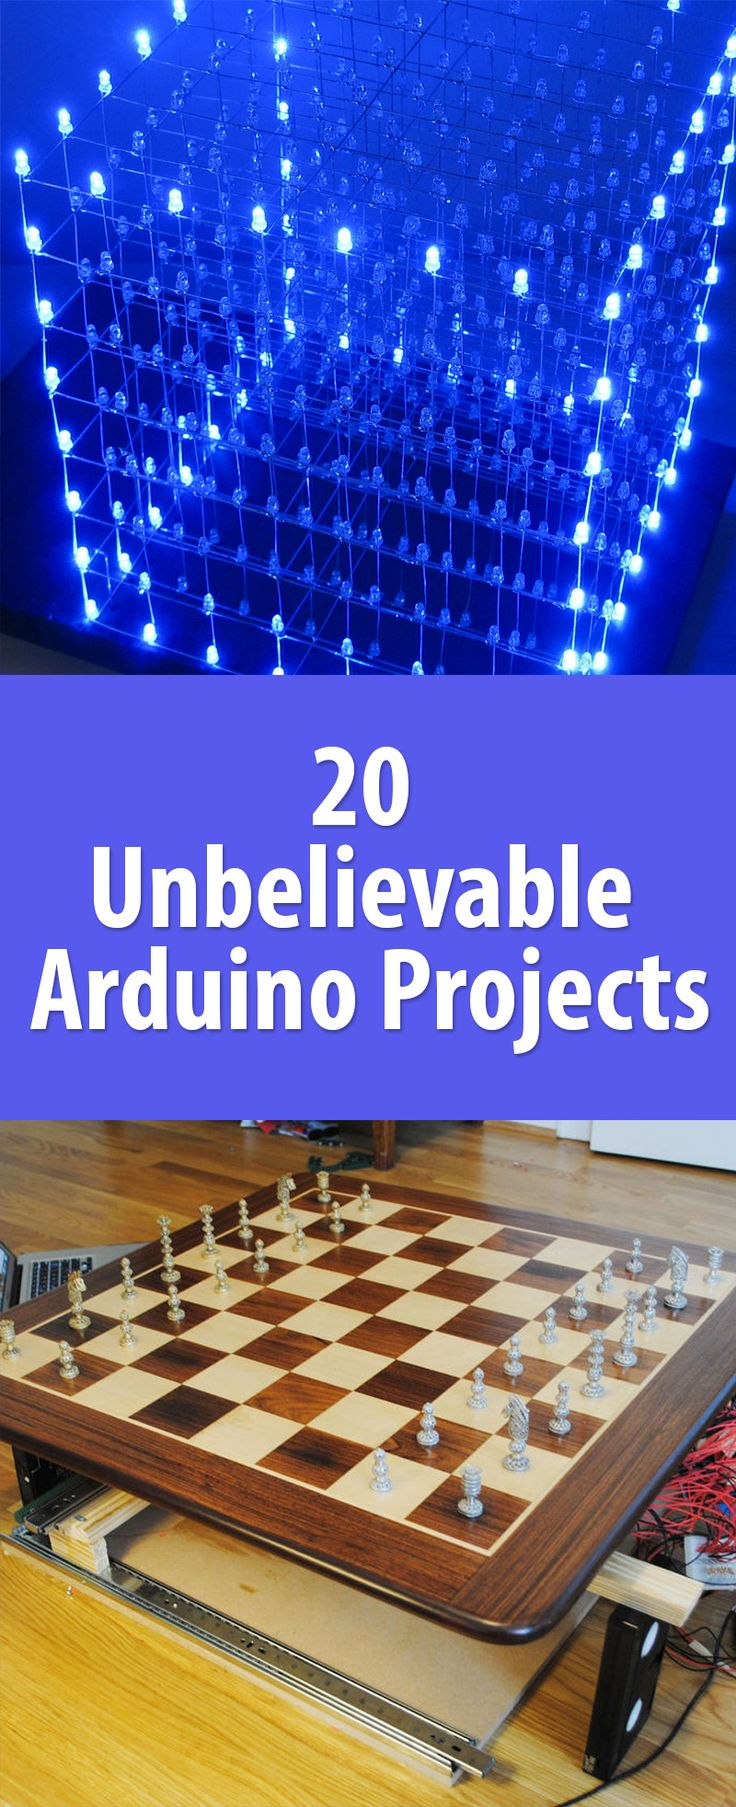 """Arduino literally translates to """"strong friend"""" in Italian. Anything is possible with the mighty power of Arduino!"""